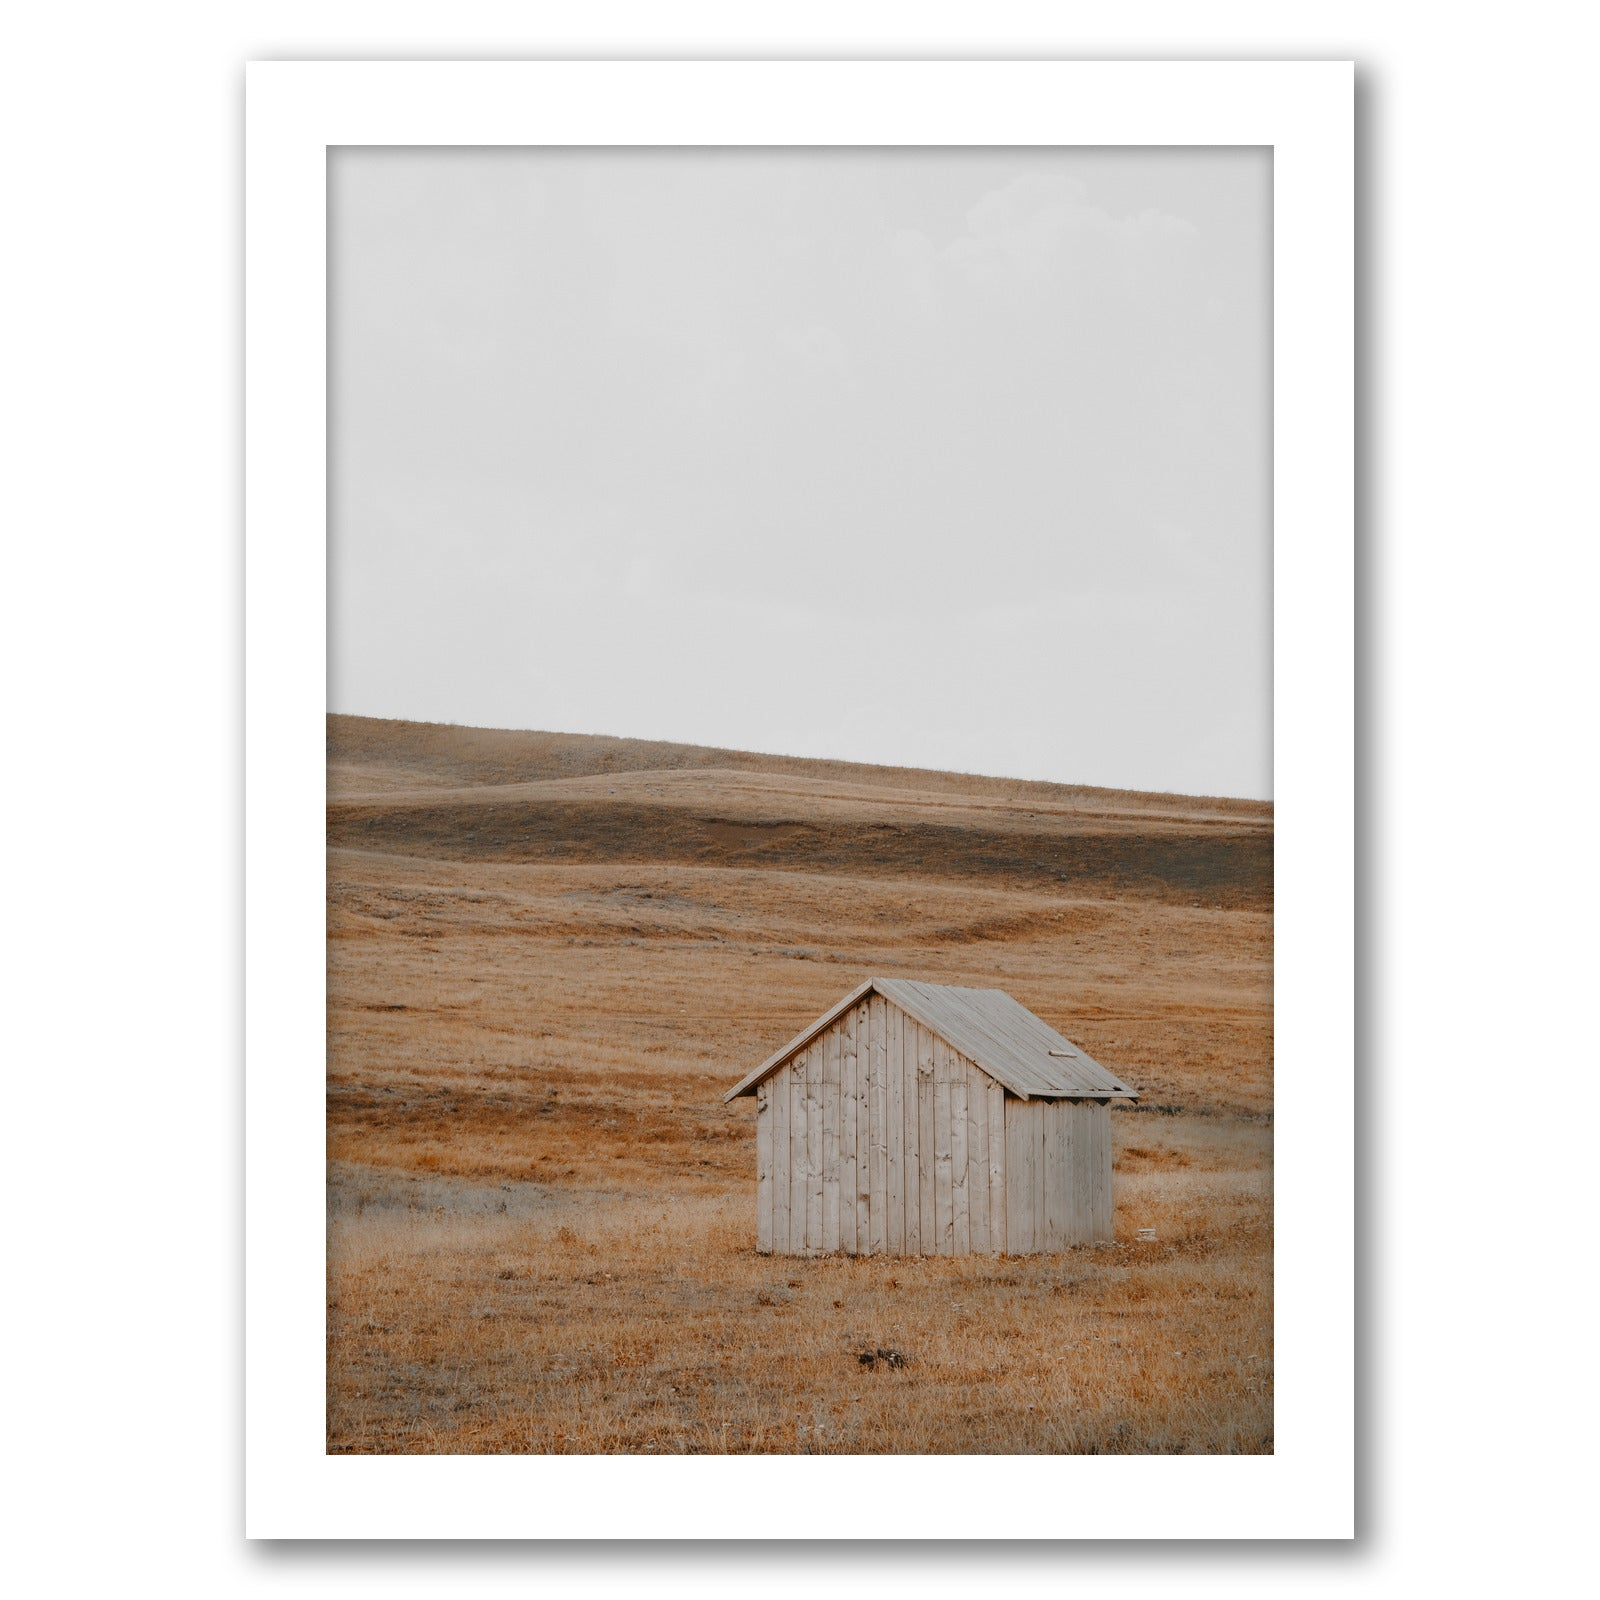 Farmhouse Landscape by Tanya Shumkina - White Framed Print - Wall Art - Americanflat